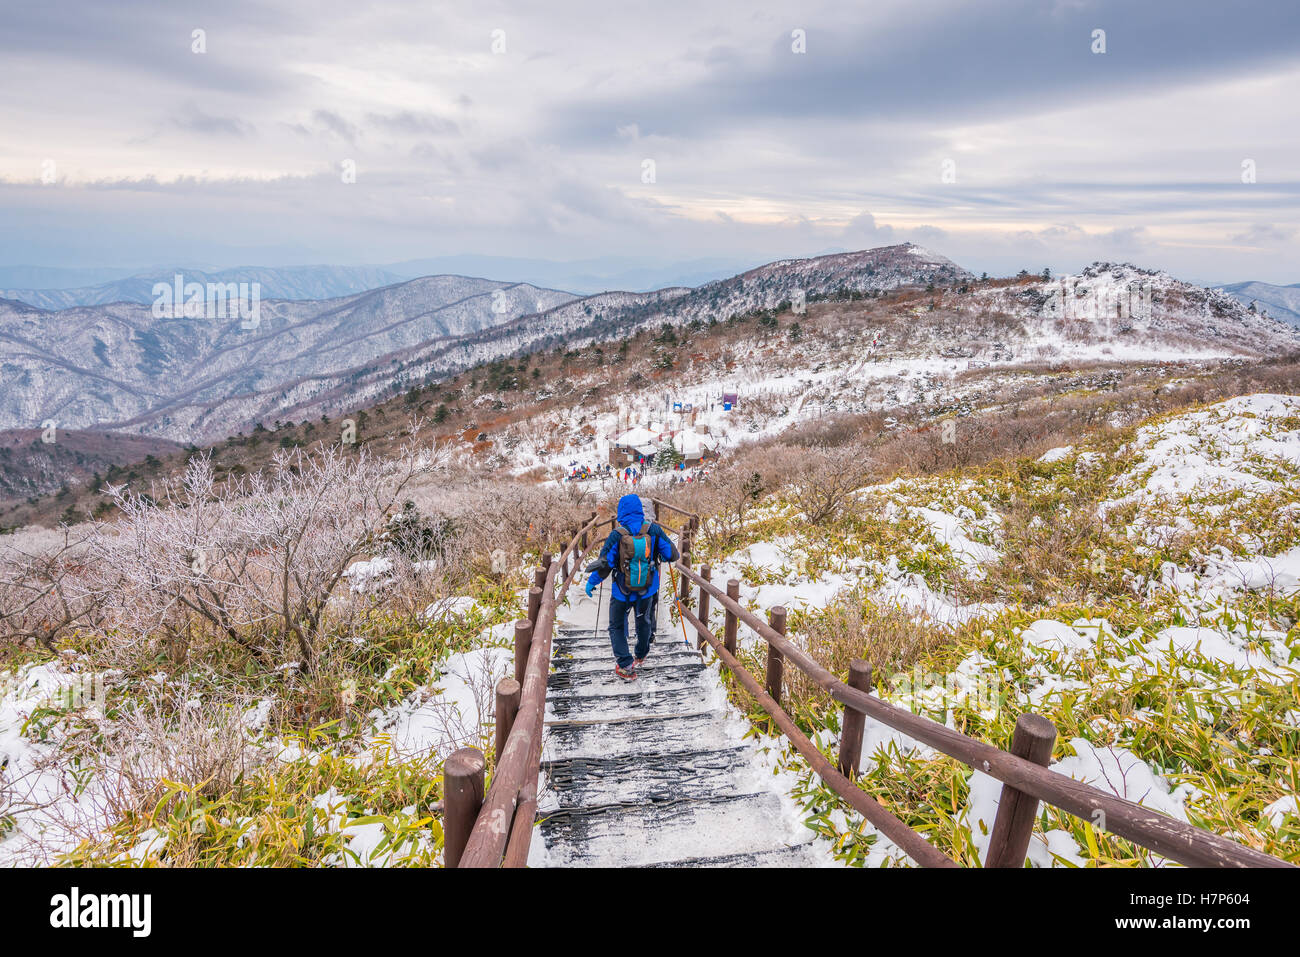 Hikers in winter mountains,Winter landscape white snow of Mountain in Korea - Stock Image